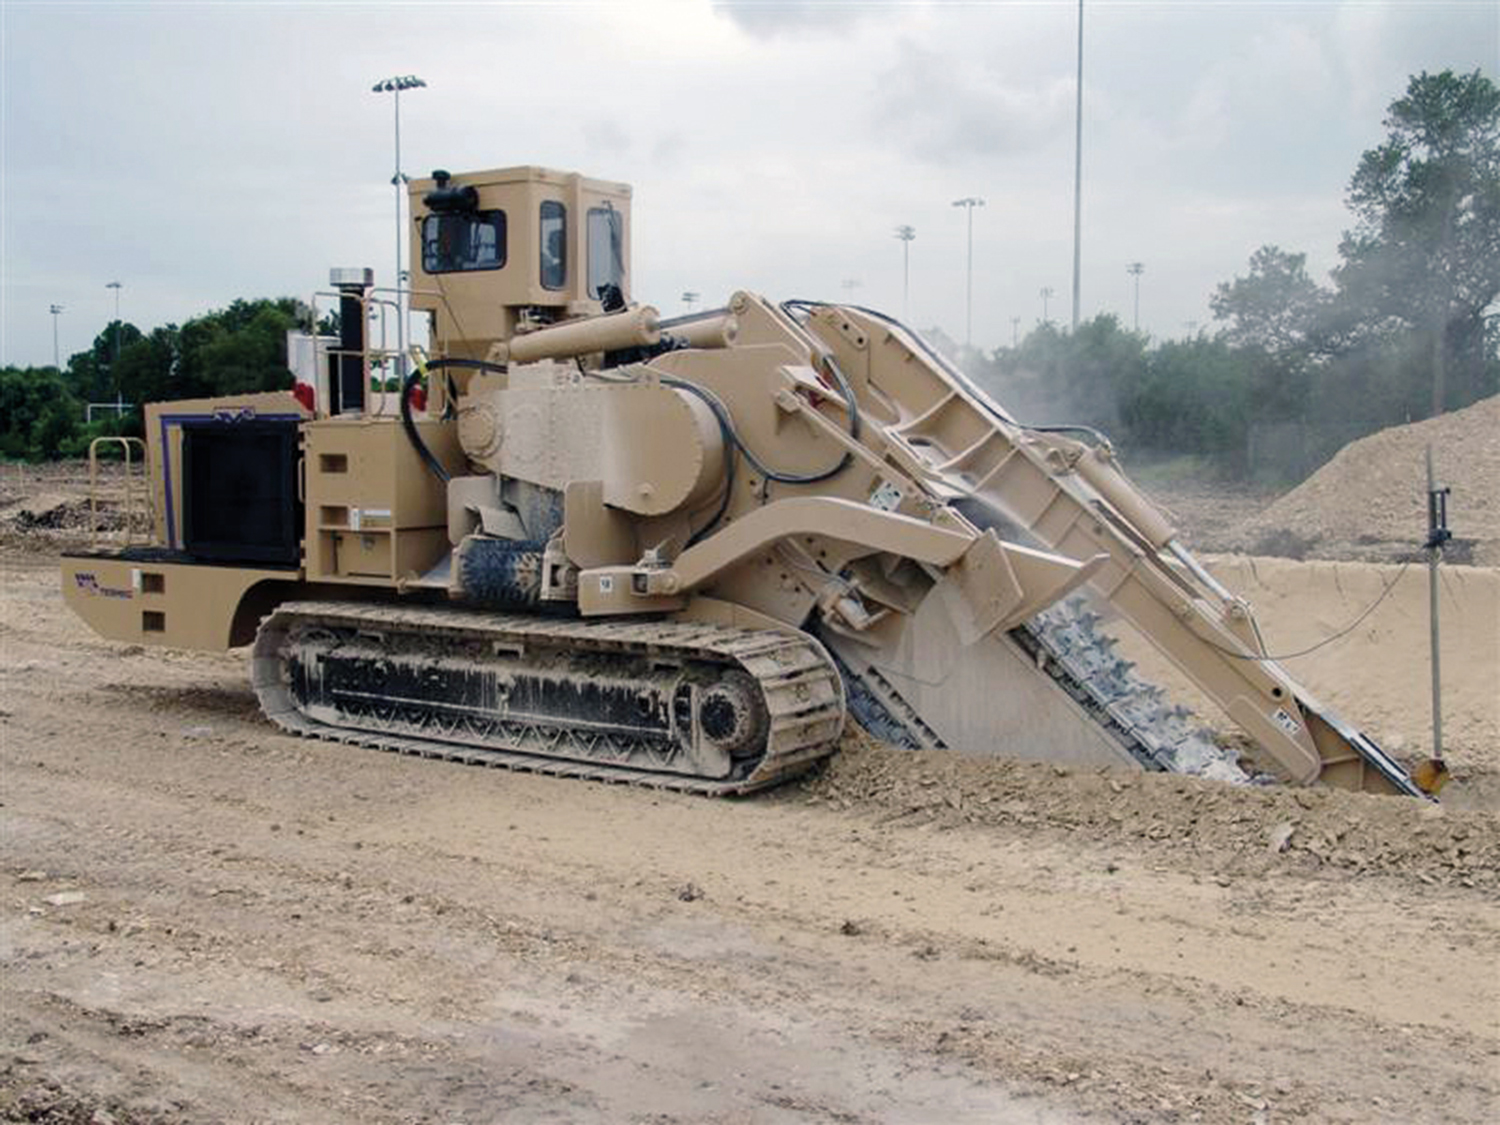 Tesmec M5 Chainsaw Trencher for hard rock excavation